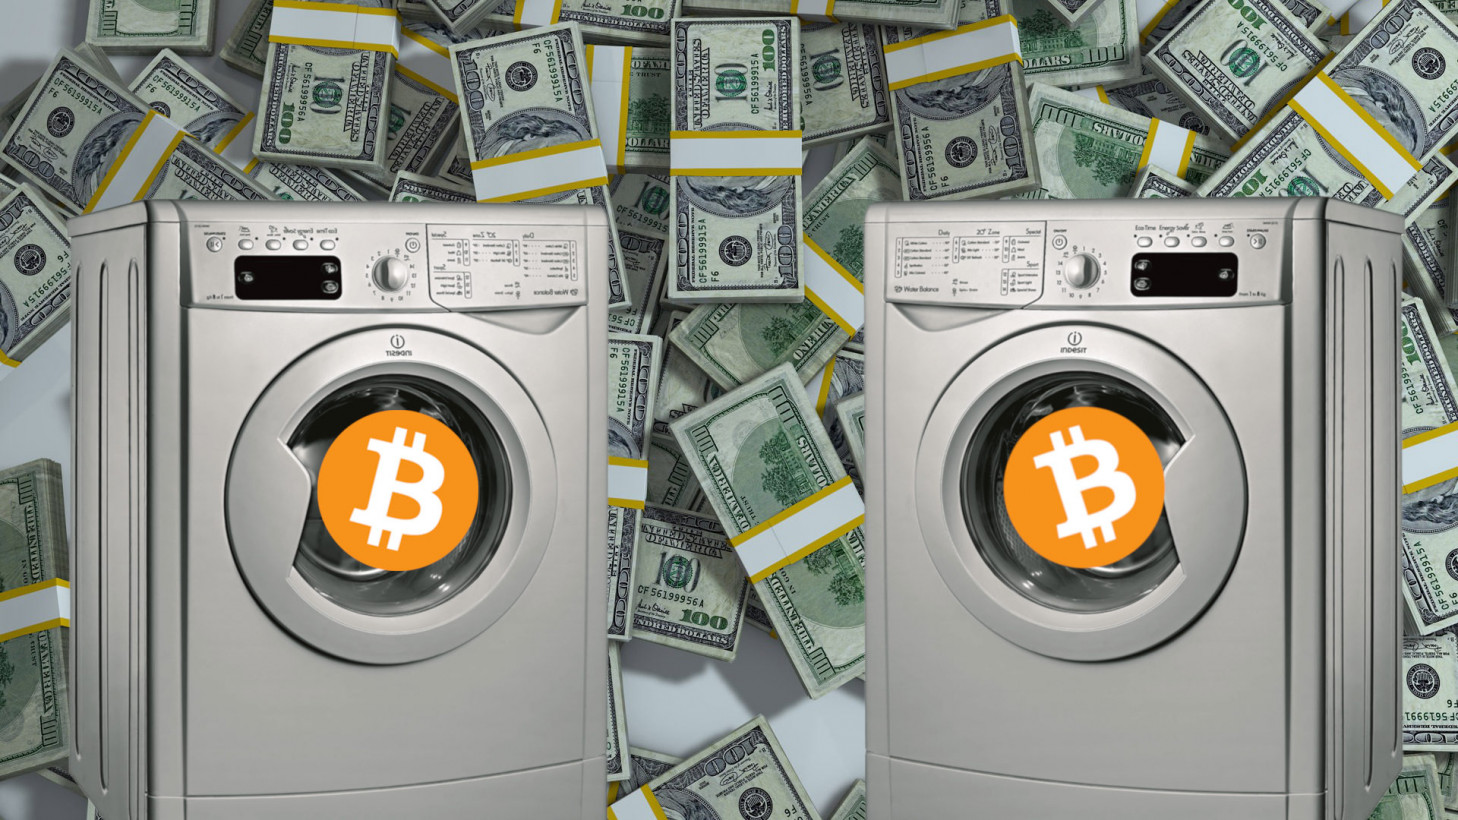 76% of laundered cryptocurrency was washed with an exchange service